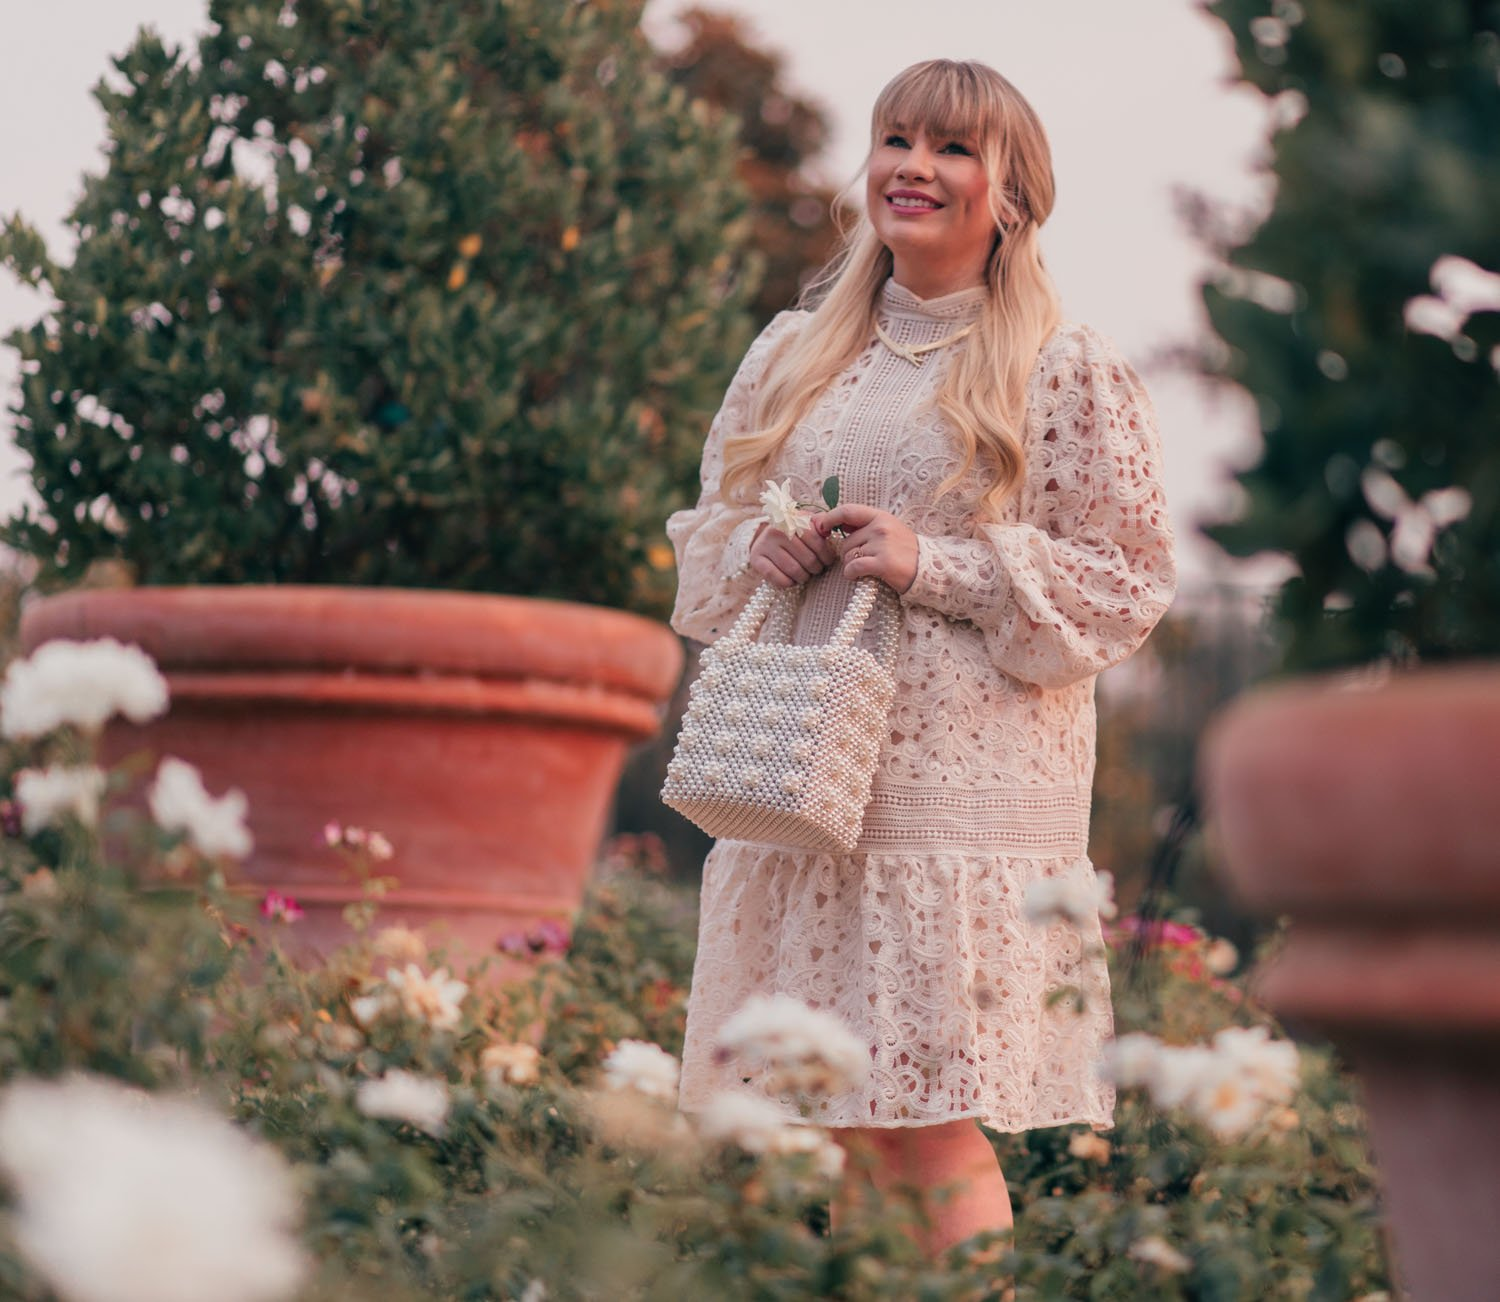 Fashion Blogger Elizabeth Hugen of Lizzie in Lace shares a Feminine White Monochrome Outfit for Fall